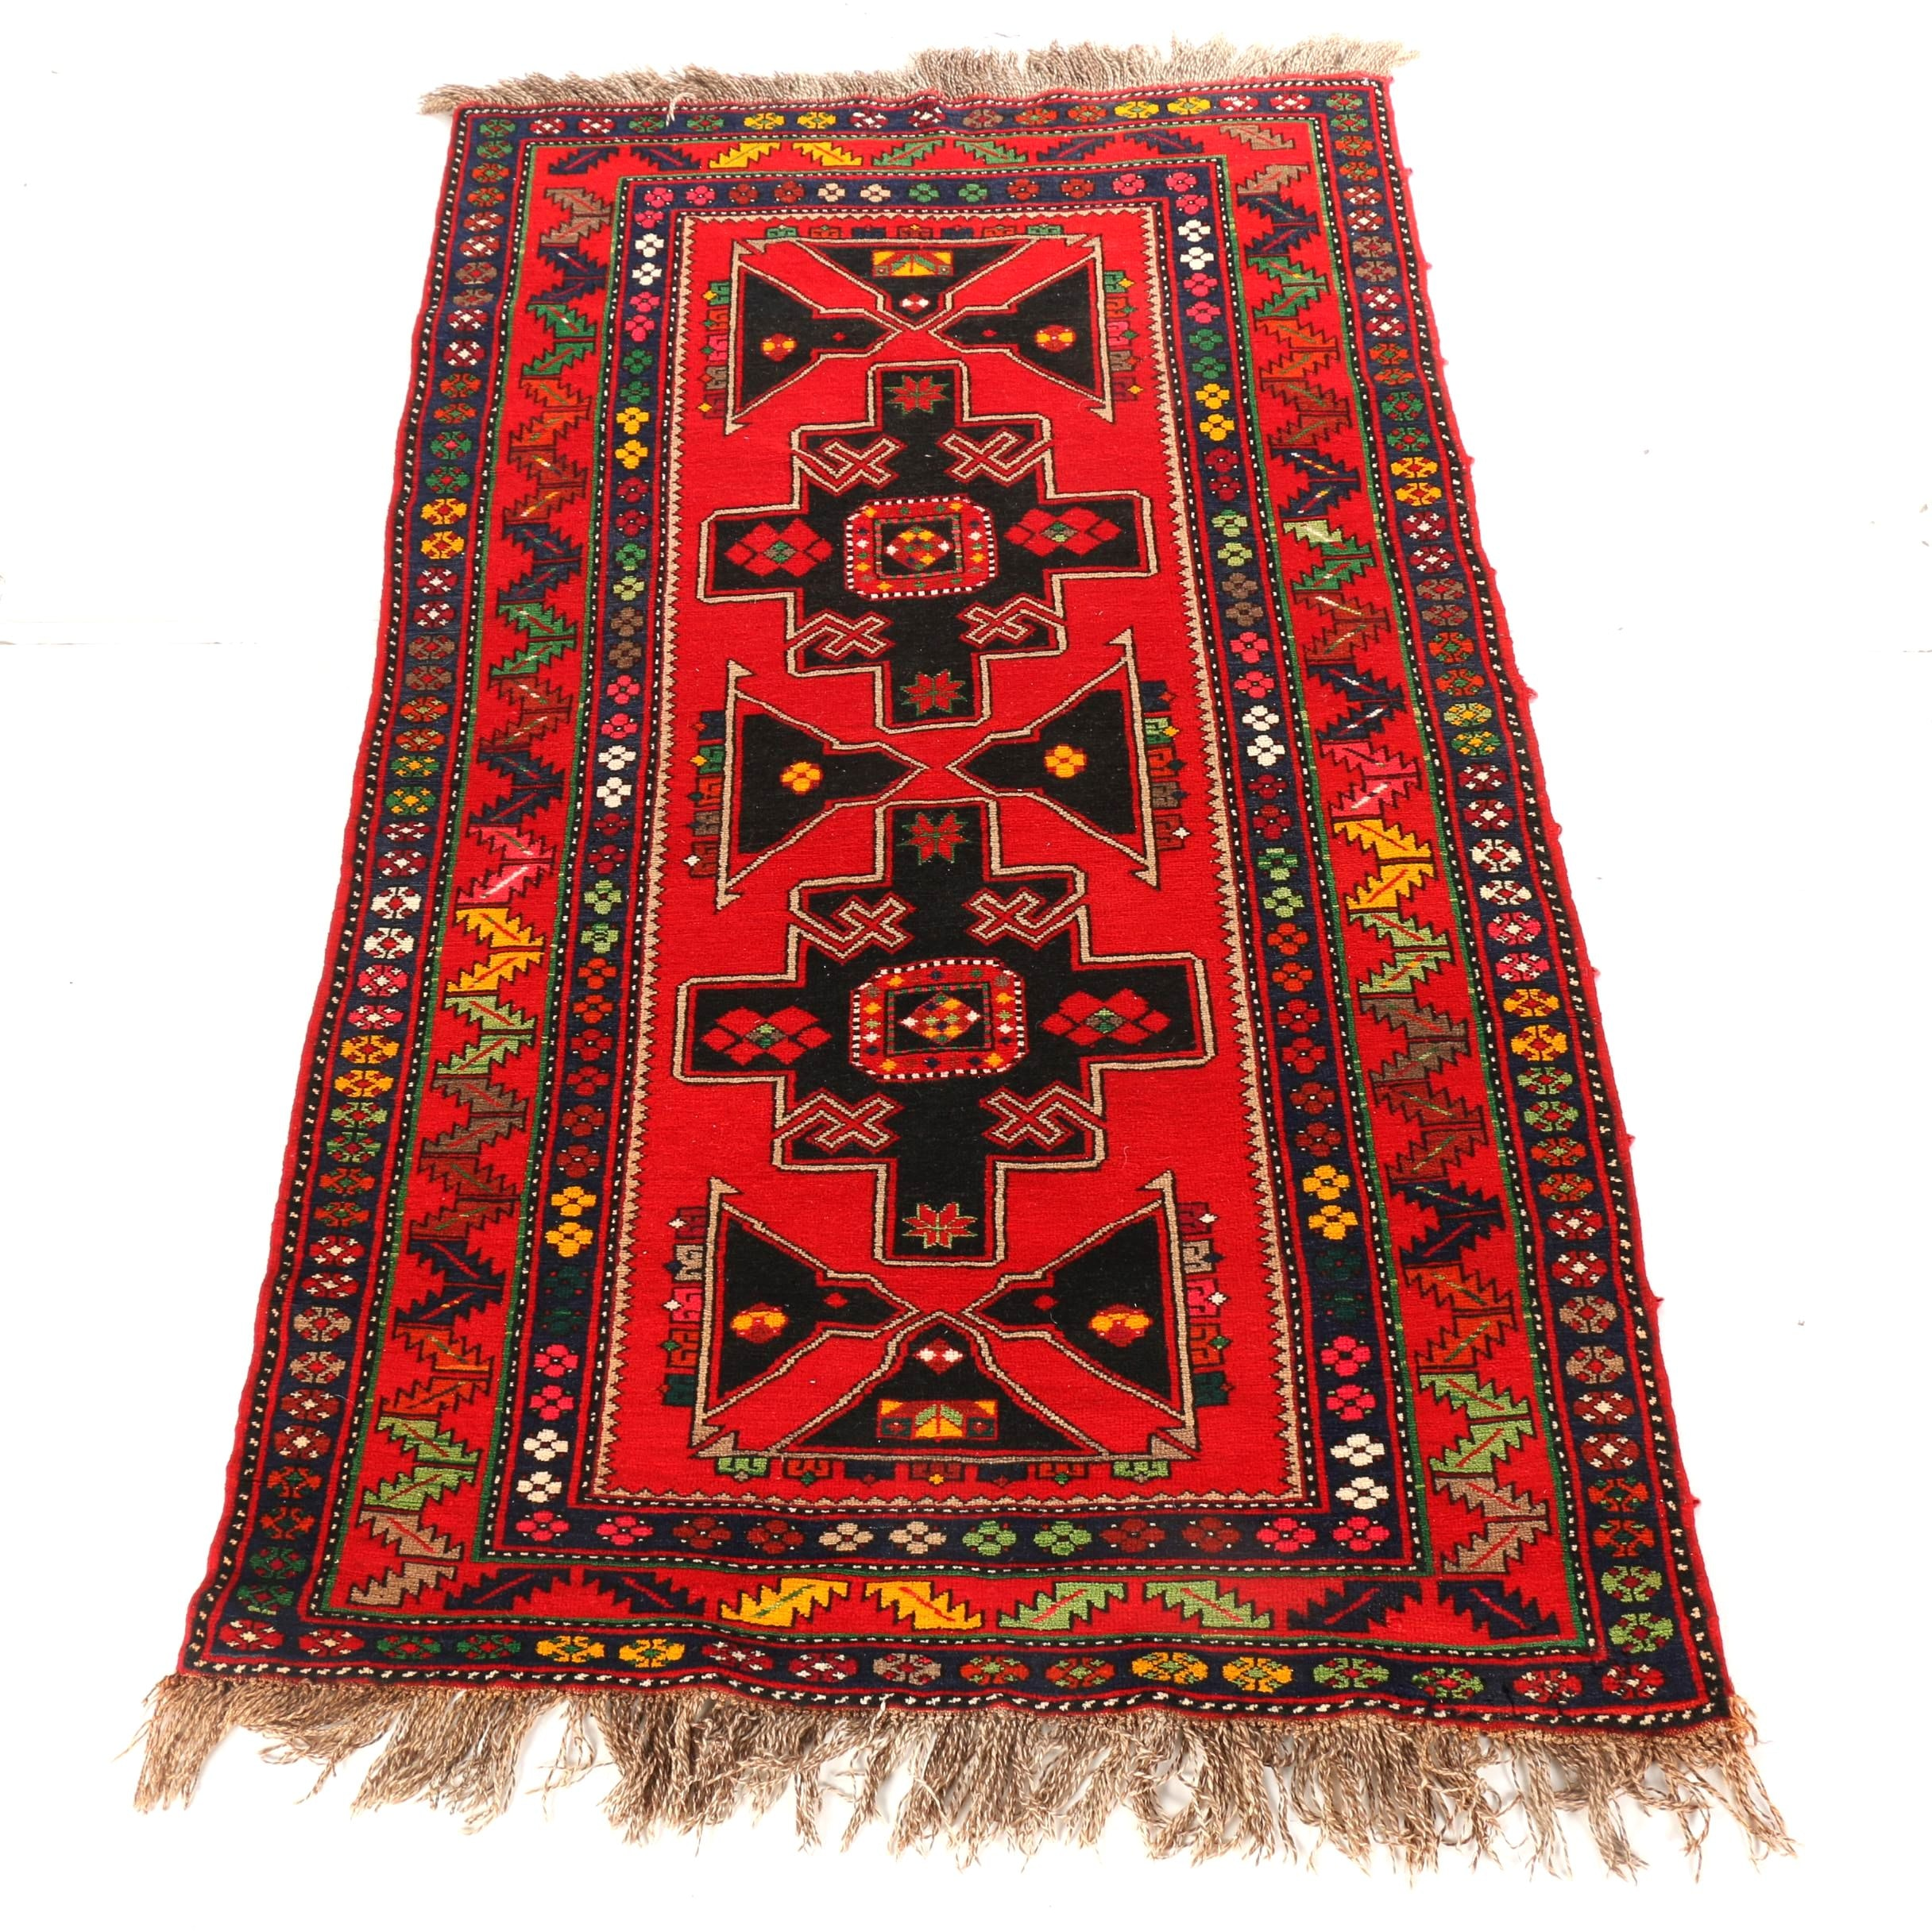 Hand-Knotted Nomadic Caucasian Area Rug